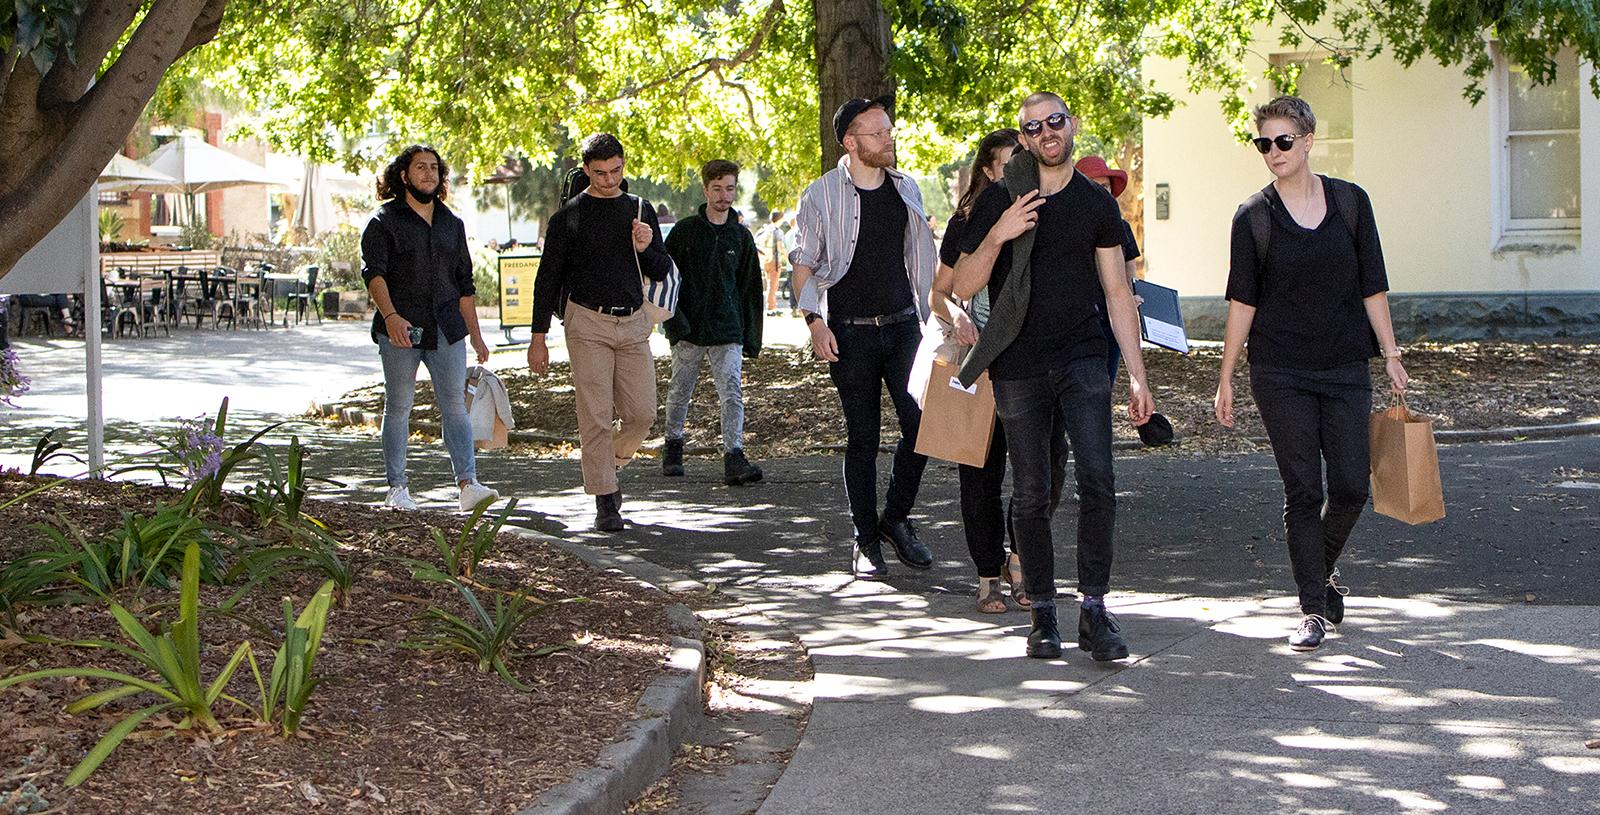 Getting to know the Abbotsford Convent – Induction Tour 2